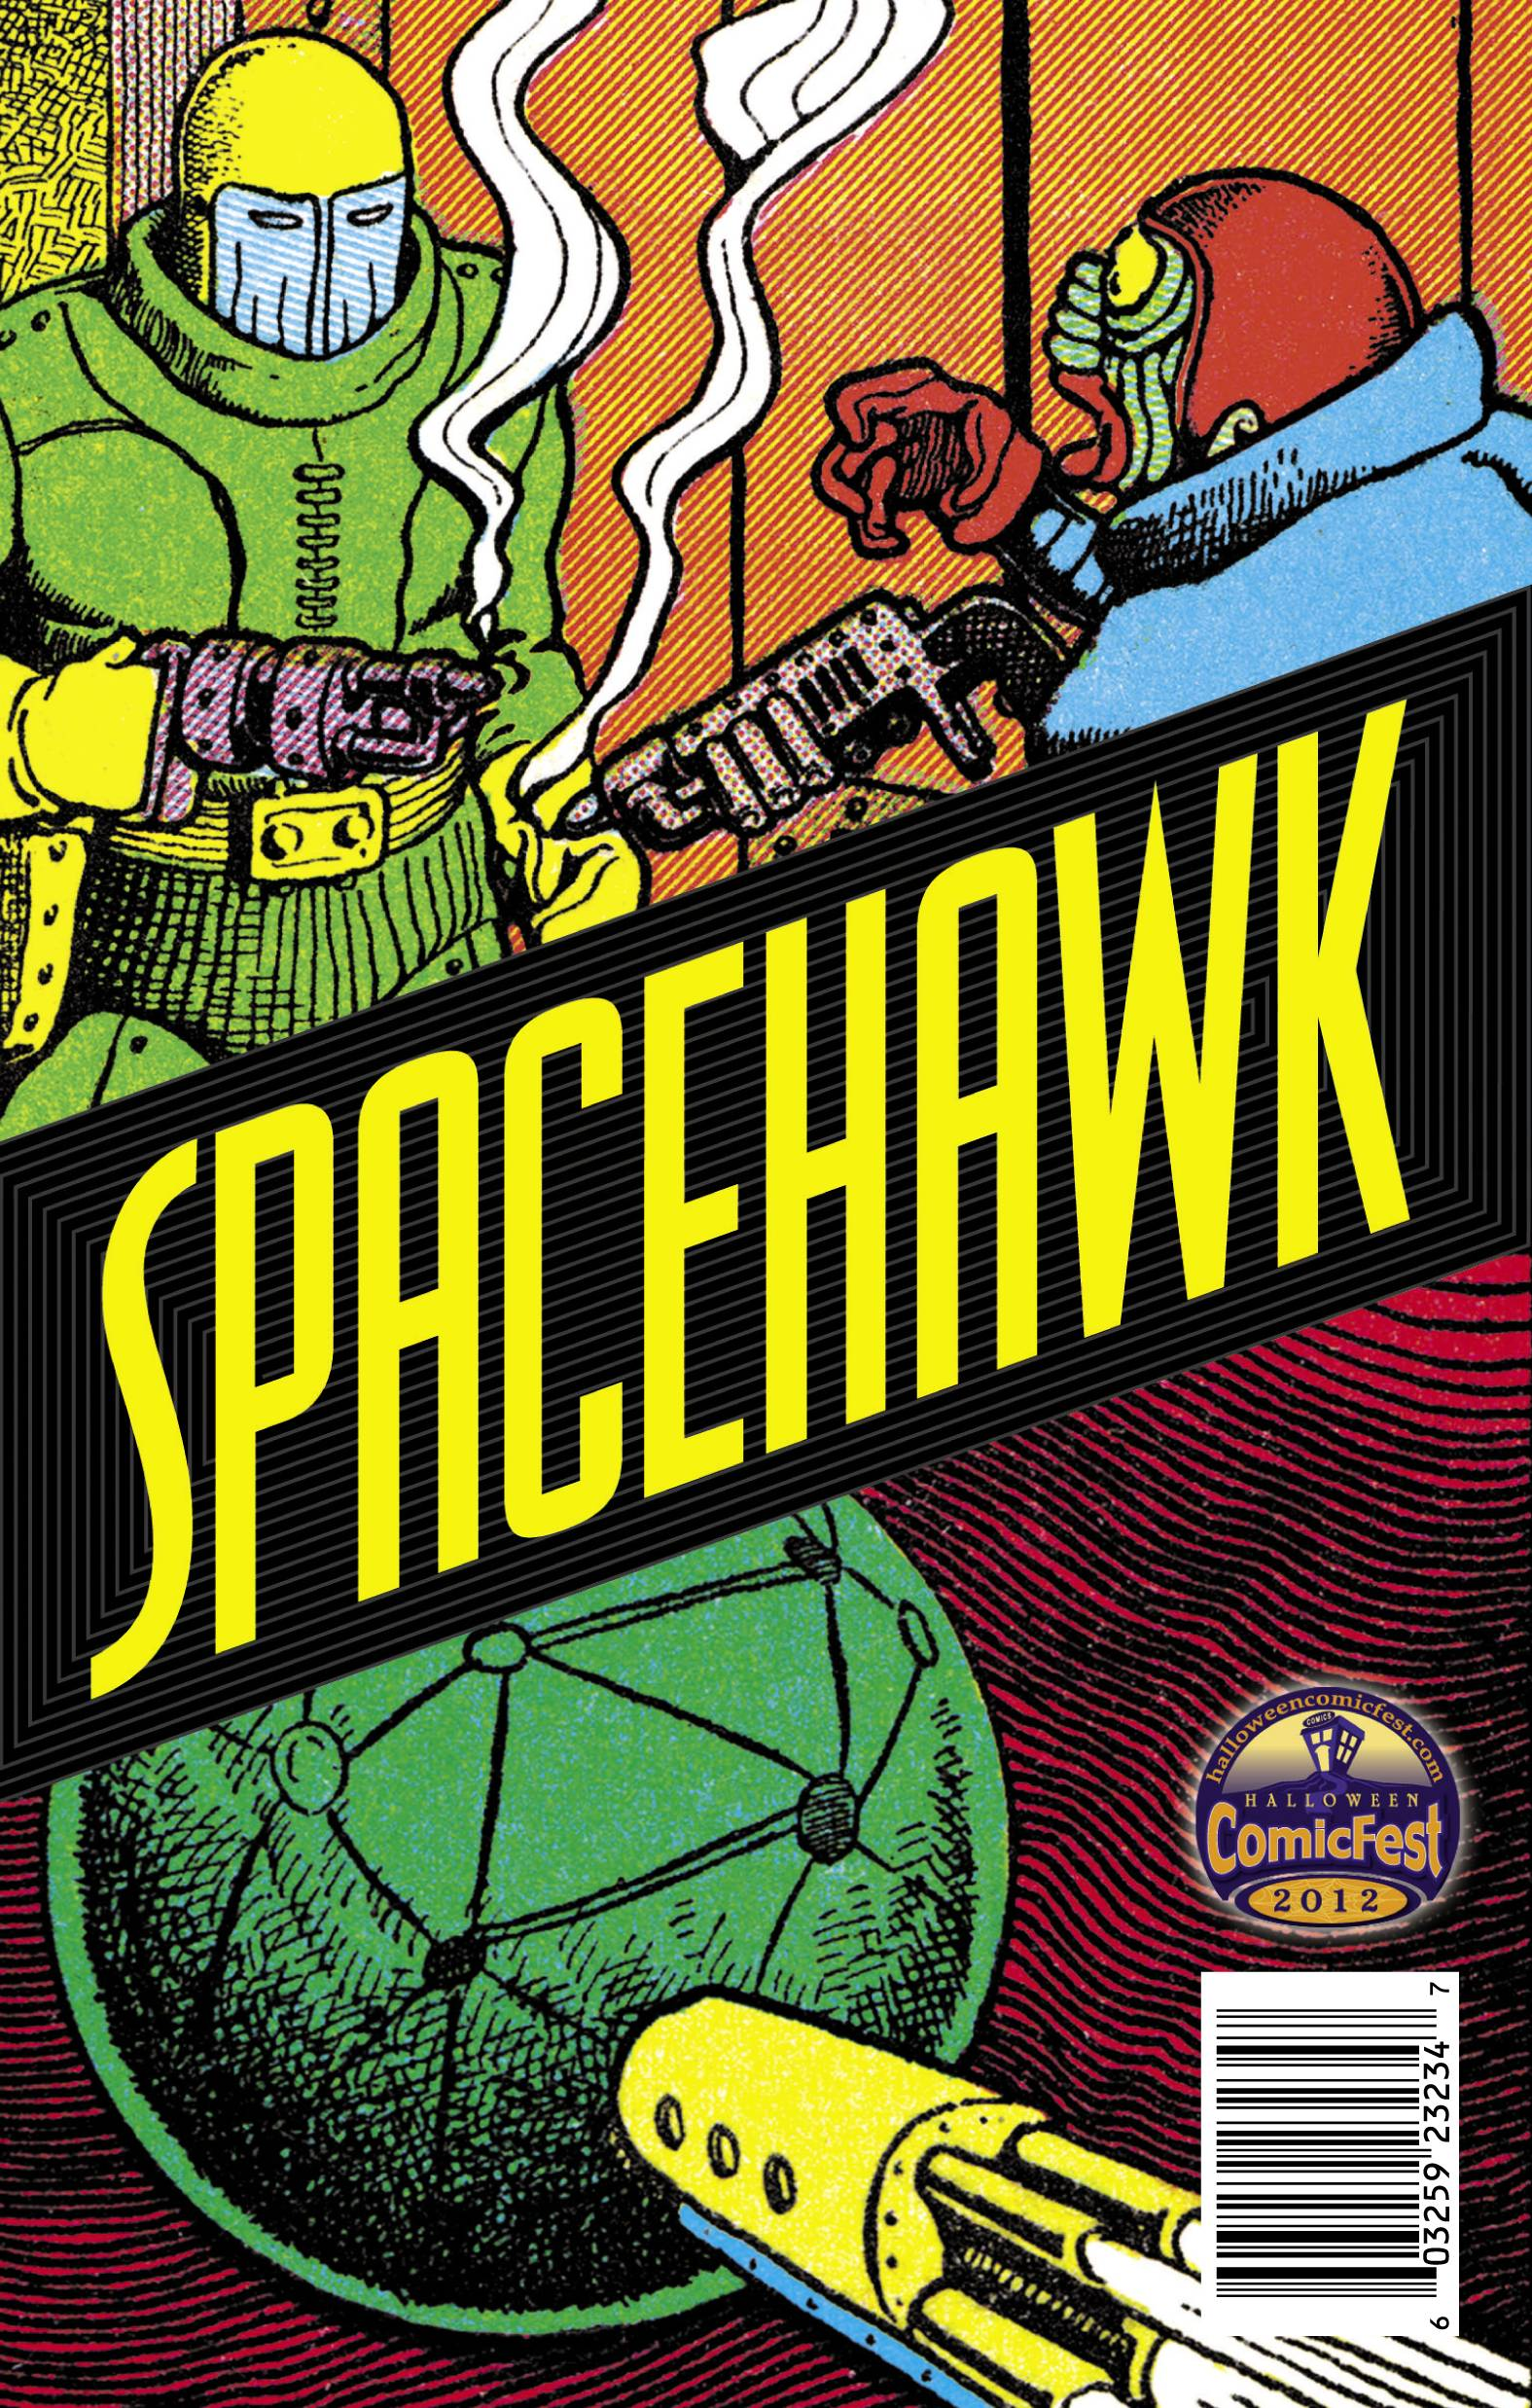 Spacehawk Mini Comic